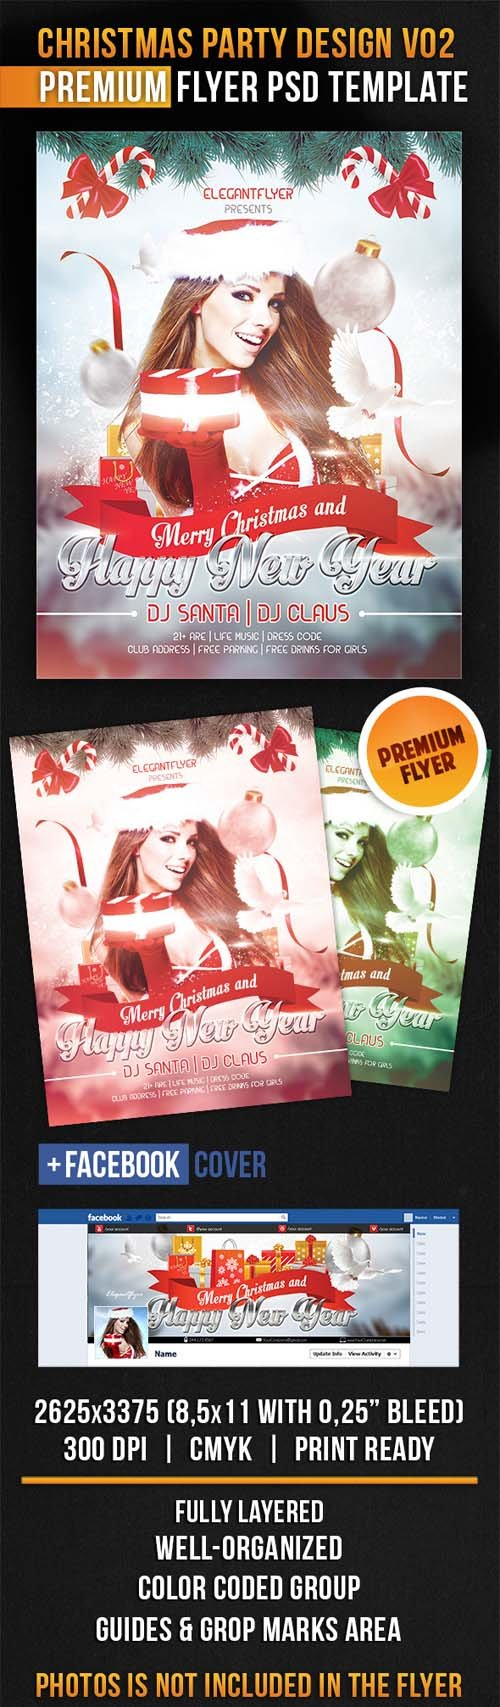 Flyer PSD Template - Christmas Party Design V02 + Facebook Cover